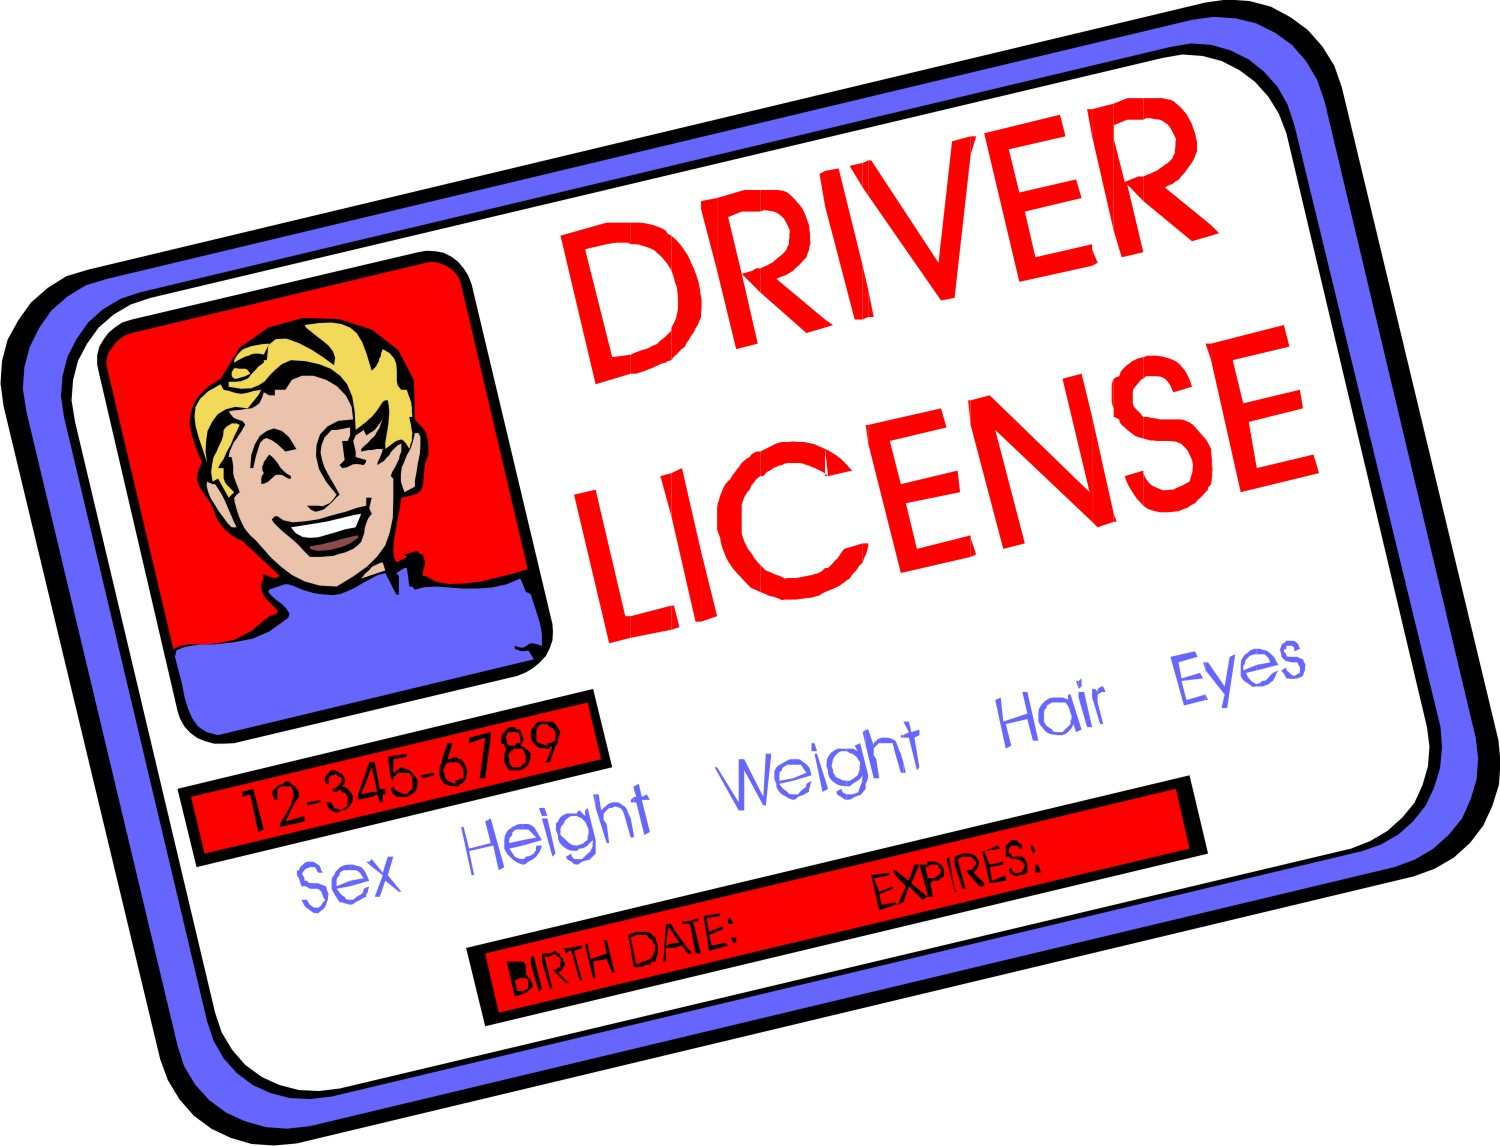 Drivers license valid driver